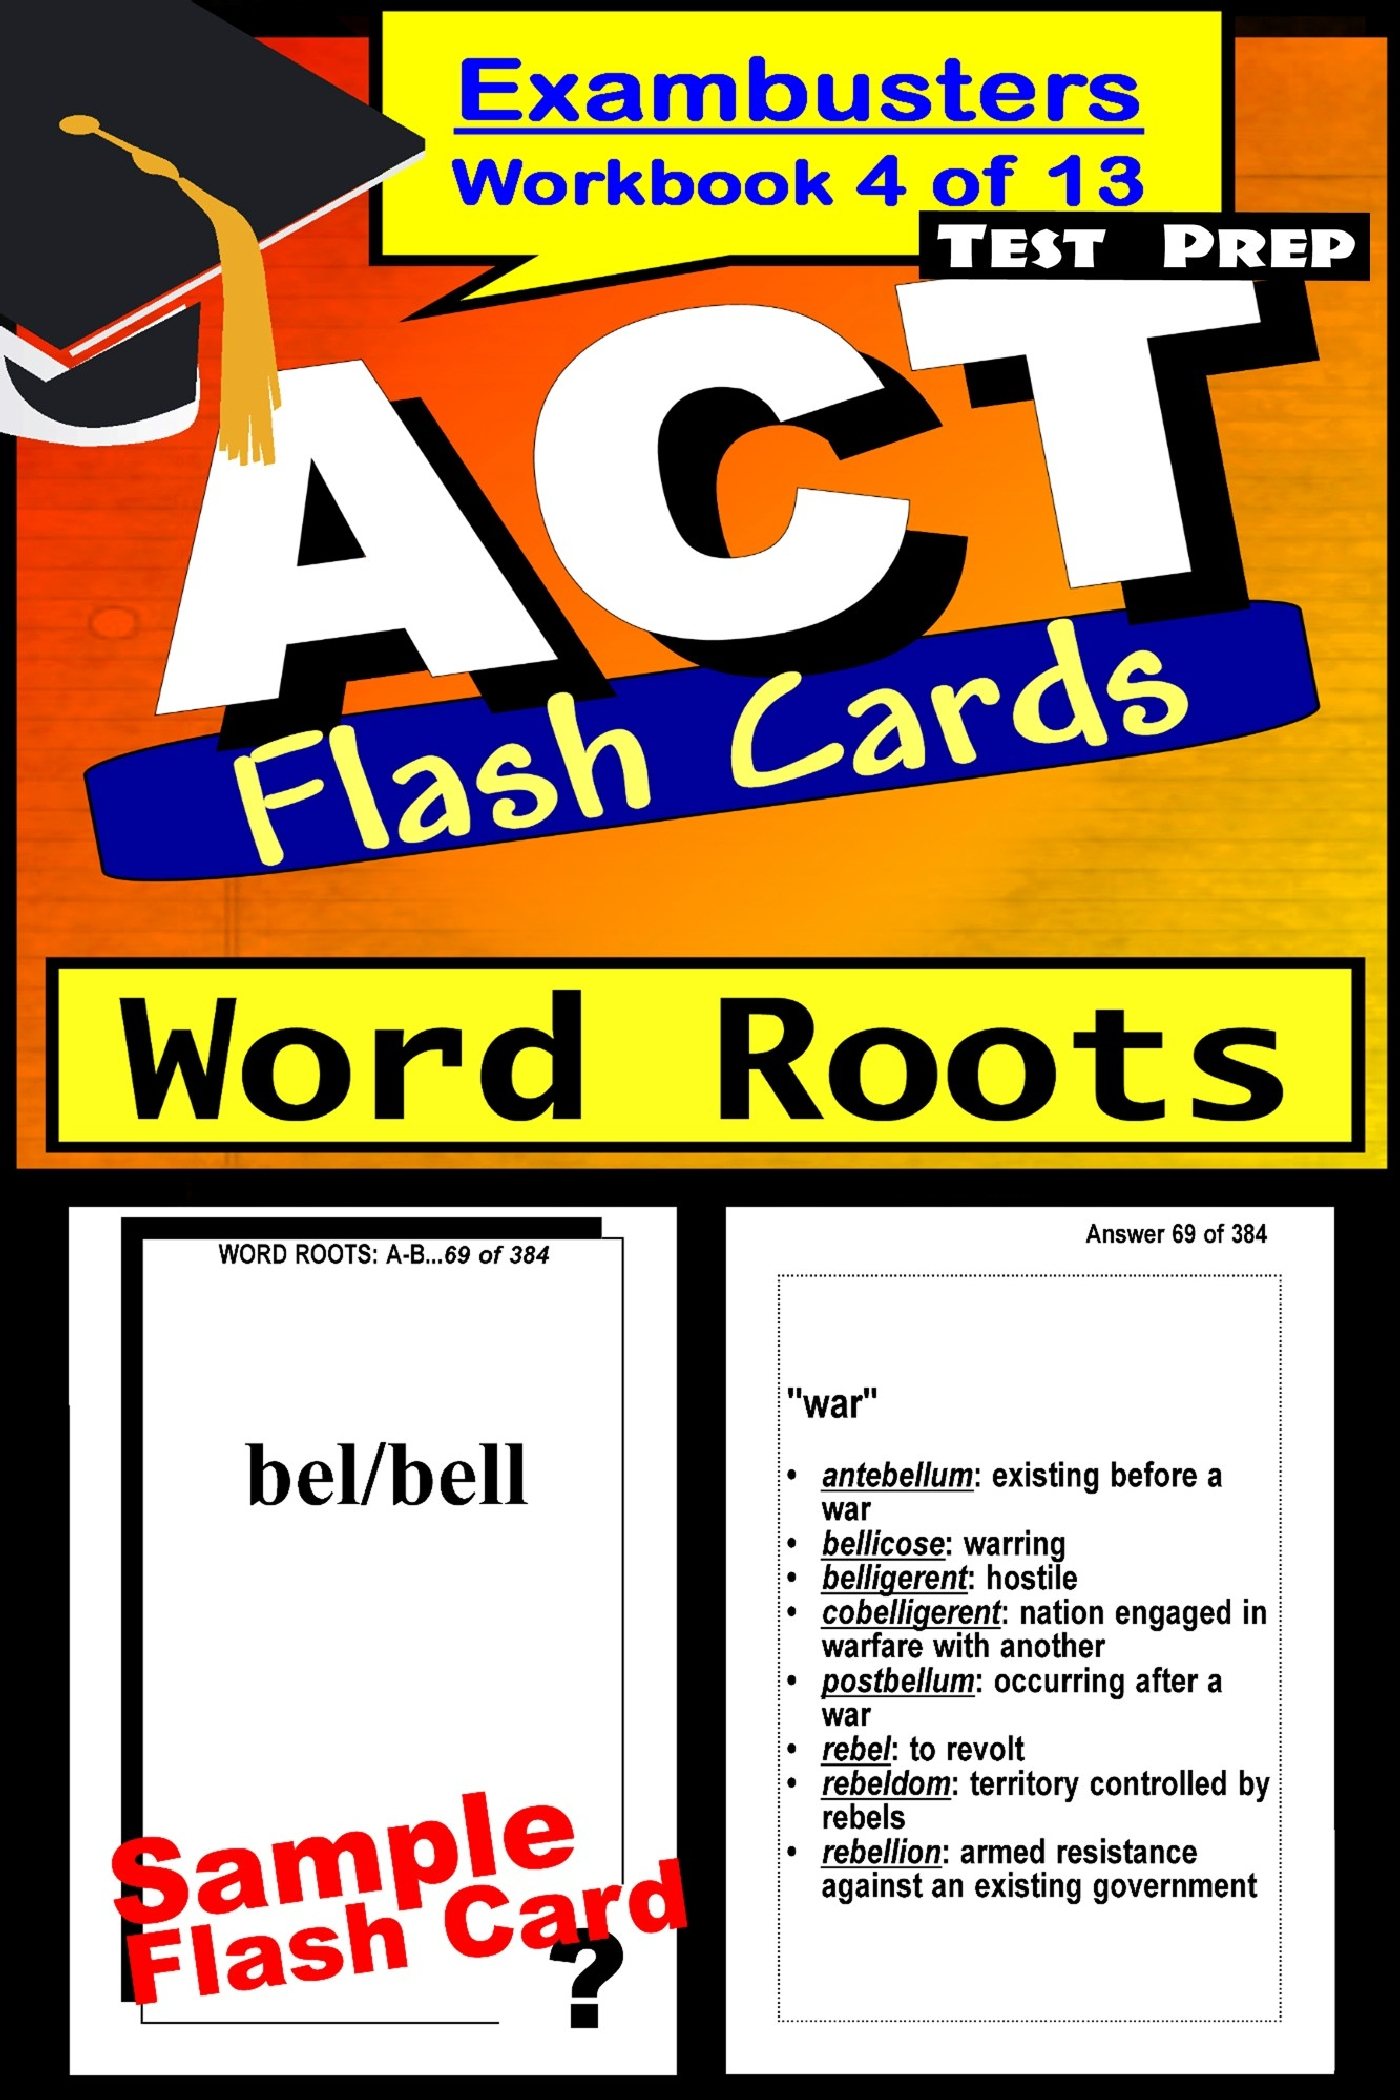 ACT Test Prep Word Roots Review--Exambusters Flash Cards--Workbook 4 of 13: ACT Exam Study Guide